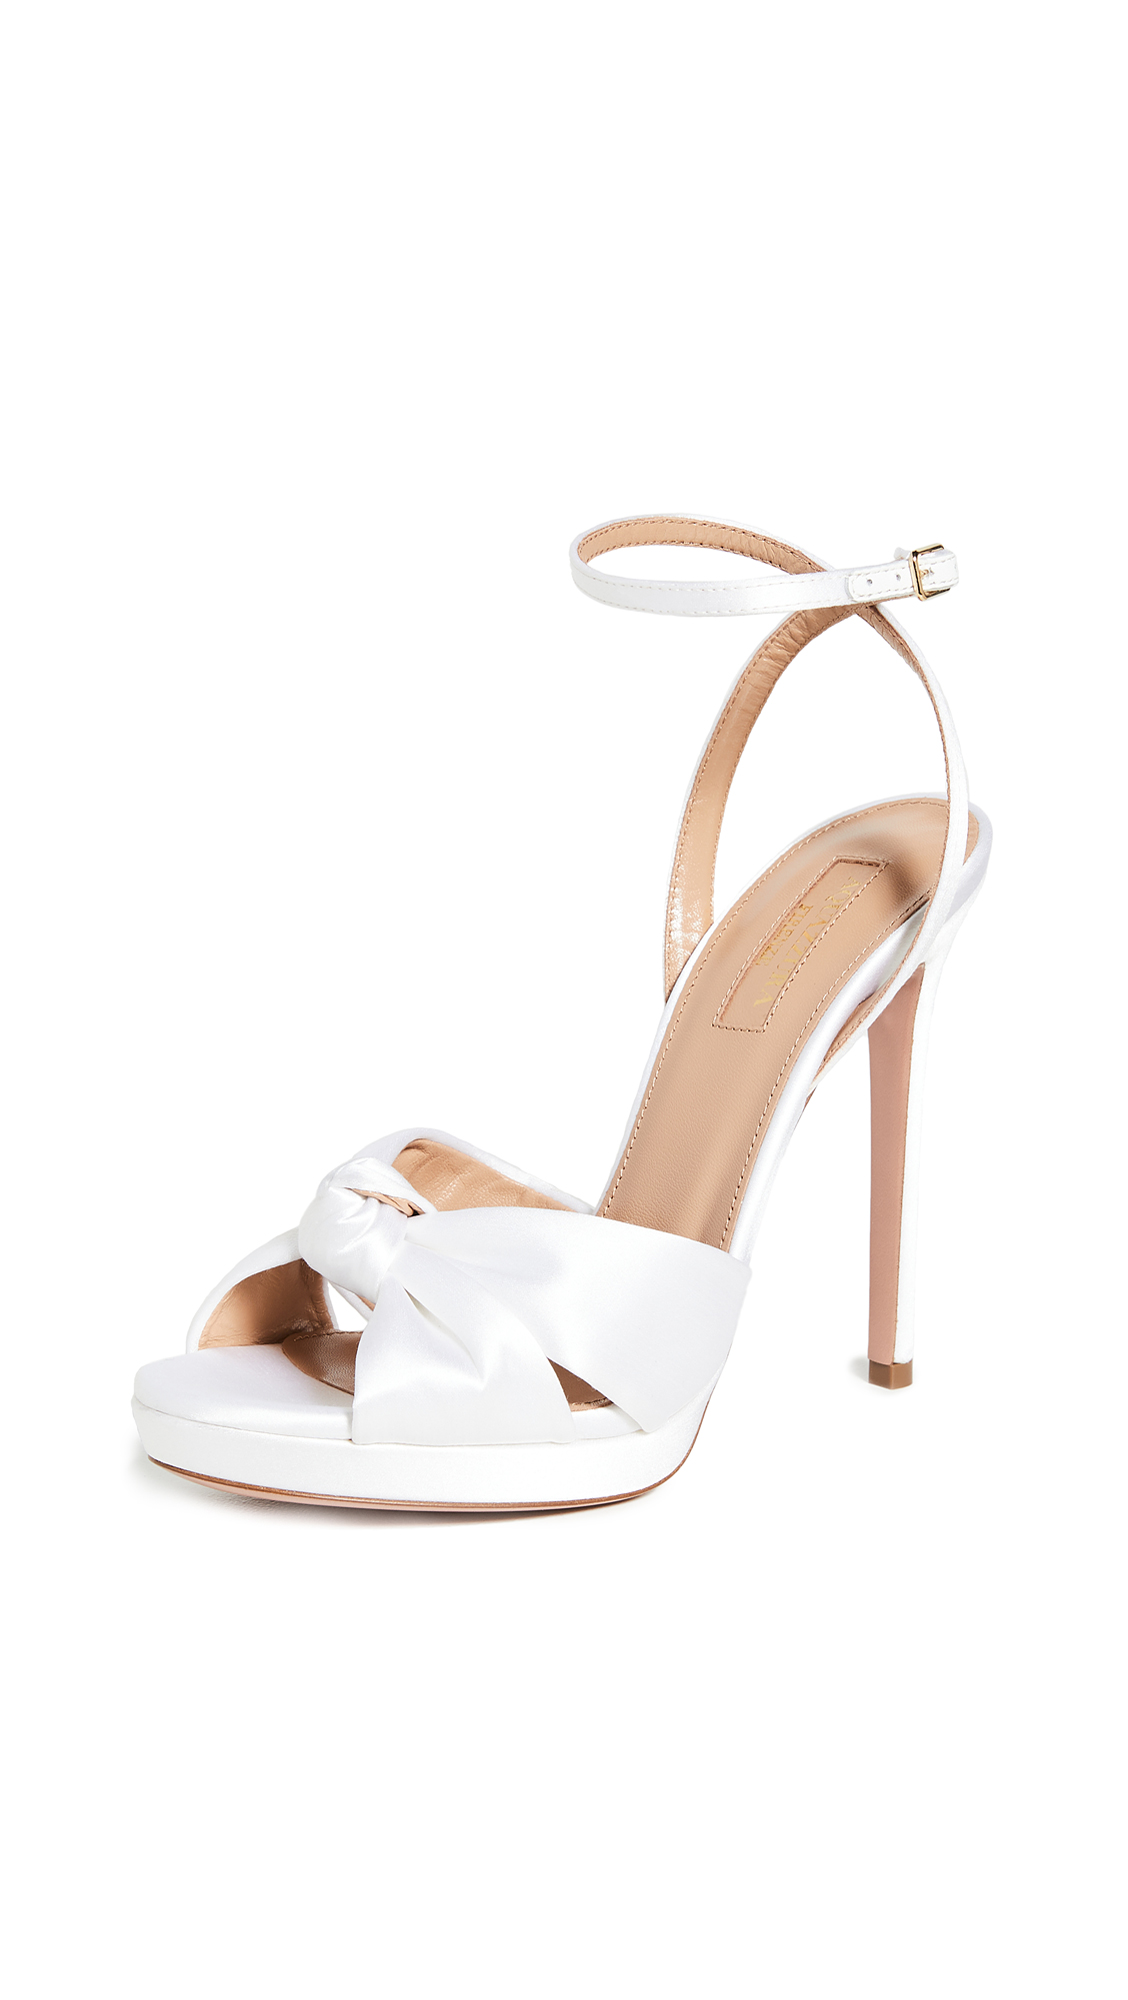 Buy Aquazzura 115mm Chance Sandals online, shop Aquazzura